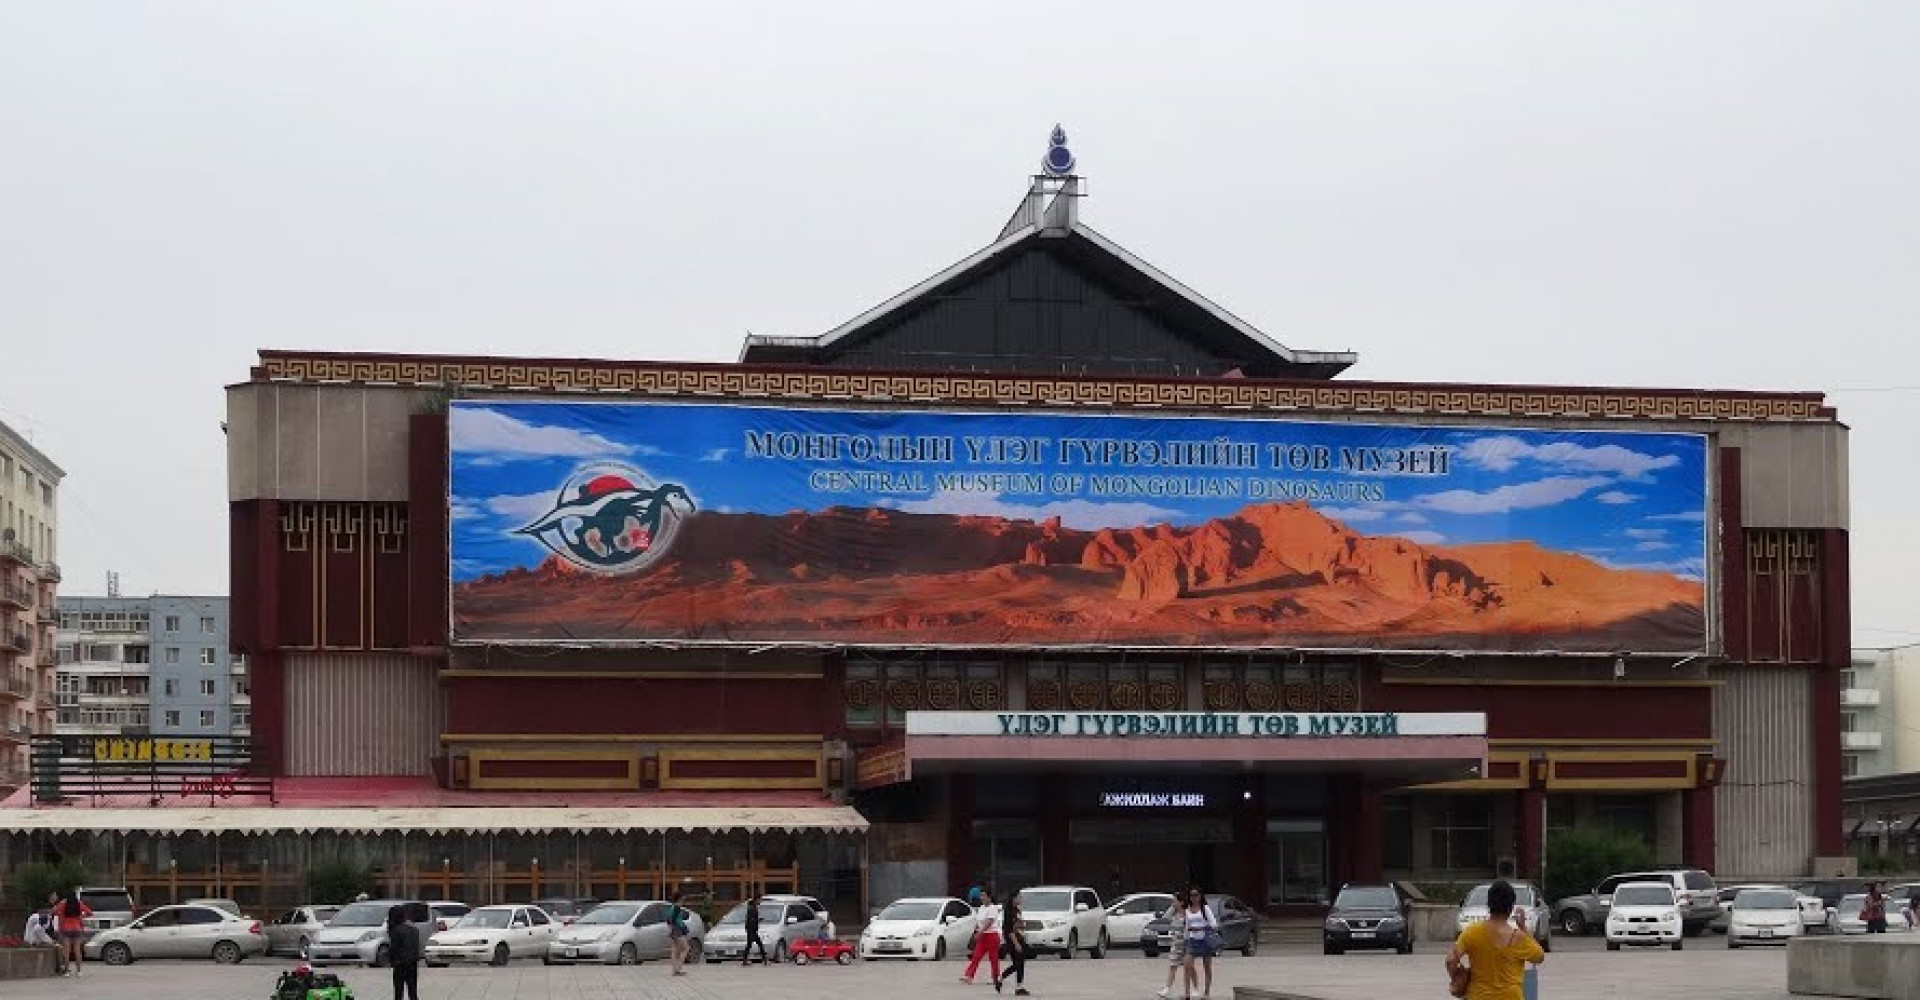 The Central Museum Of Mongolian Dinosaurs